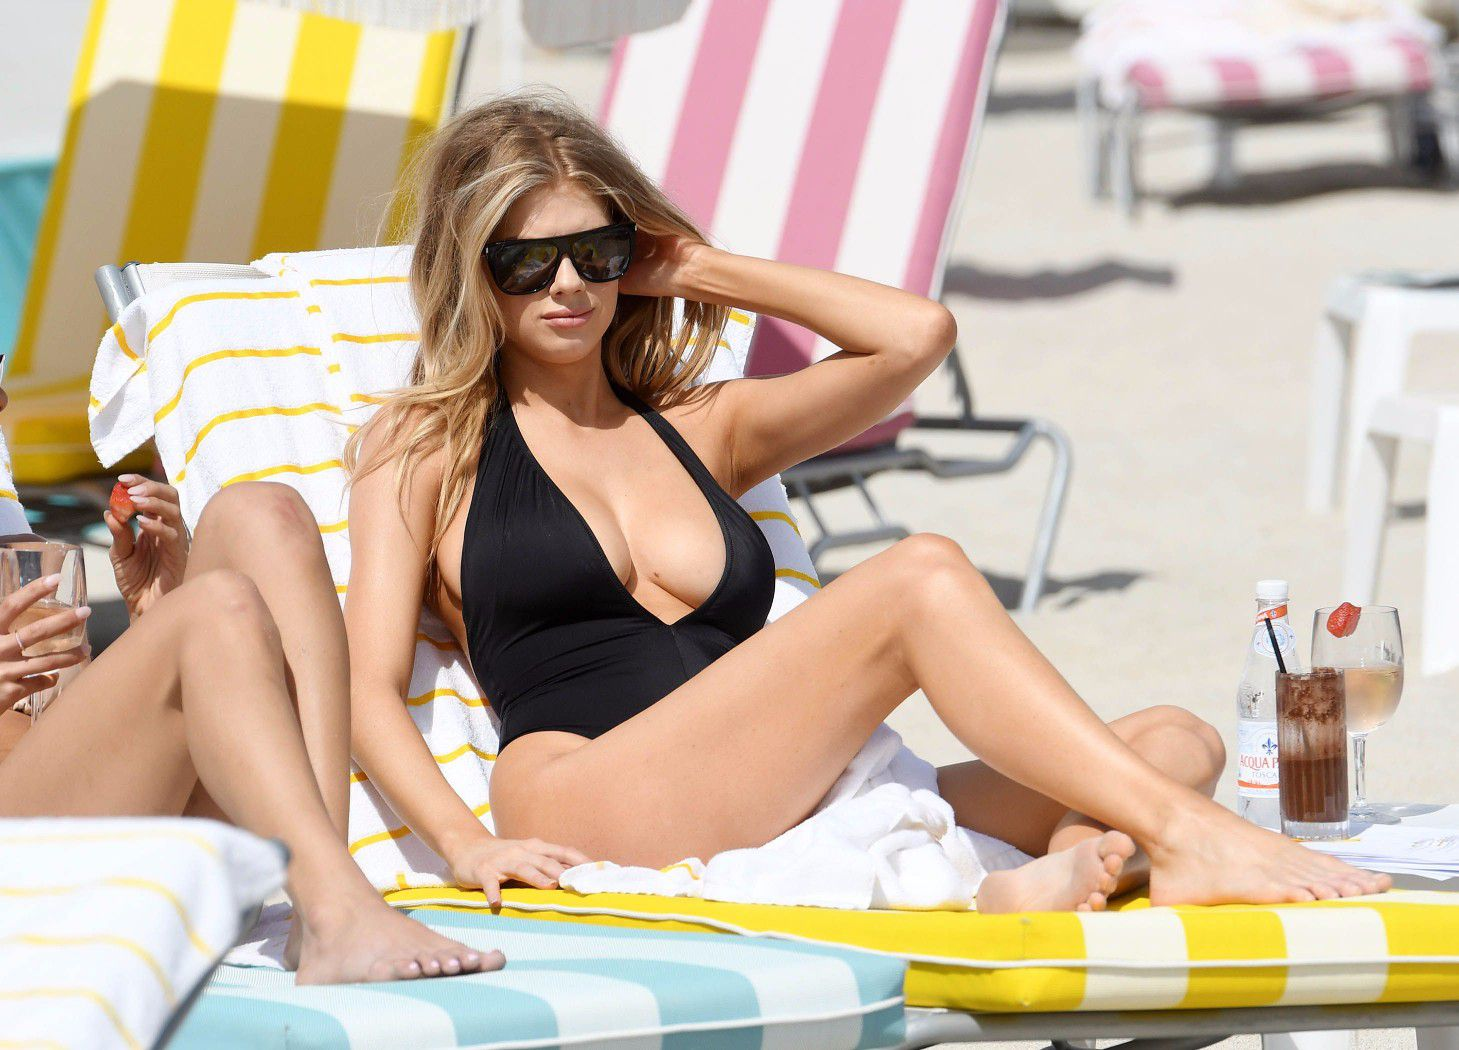 charlotte-mckinney-nipple-slip-at-the-beach-in-miami-38